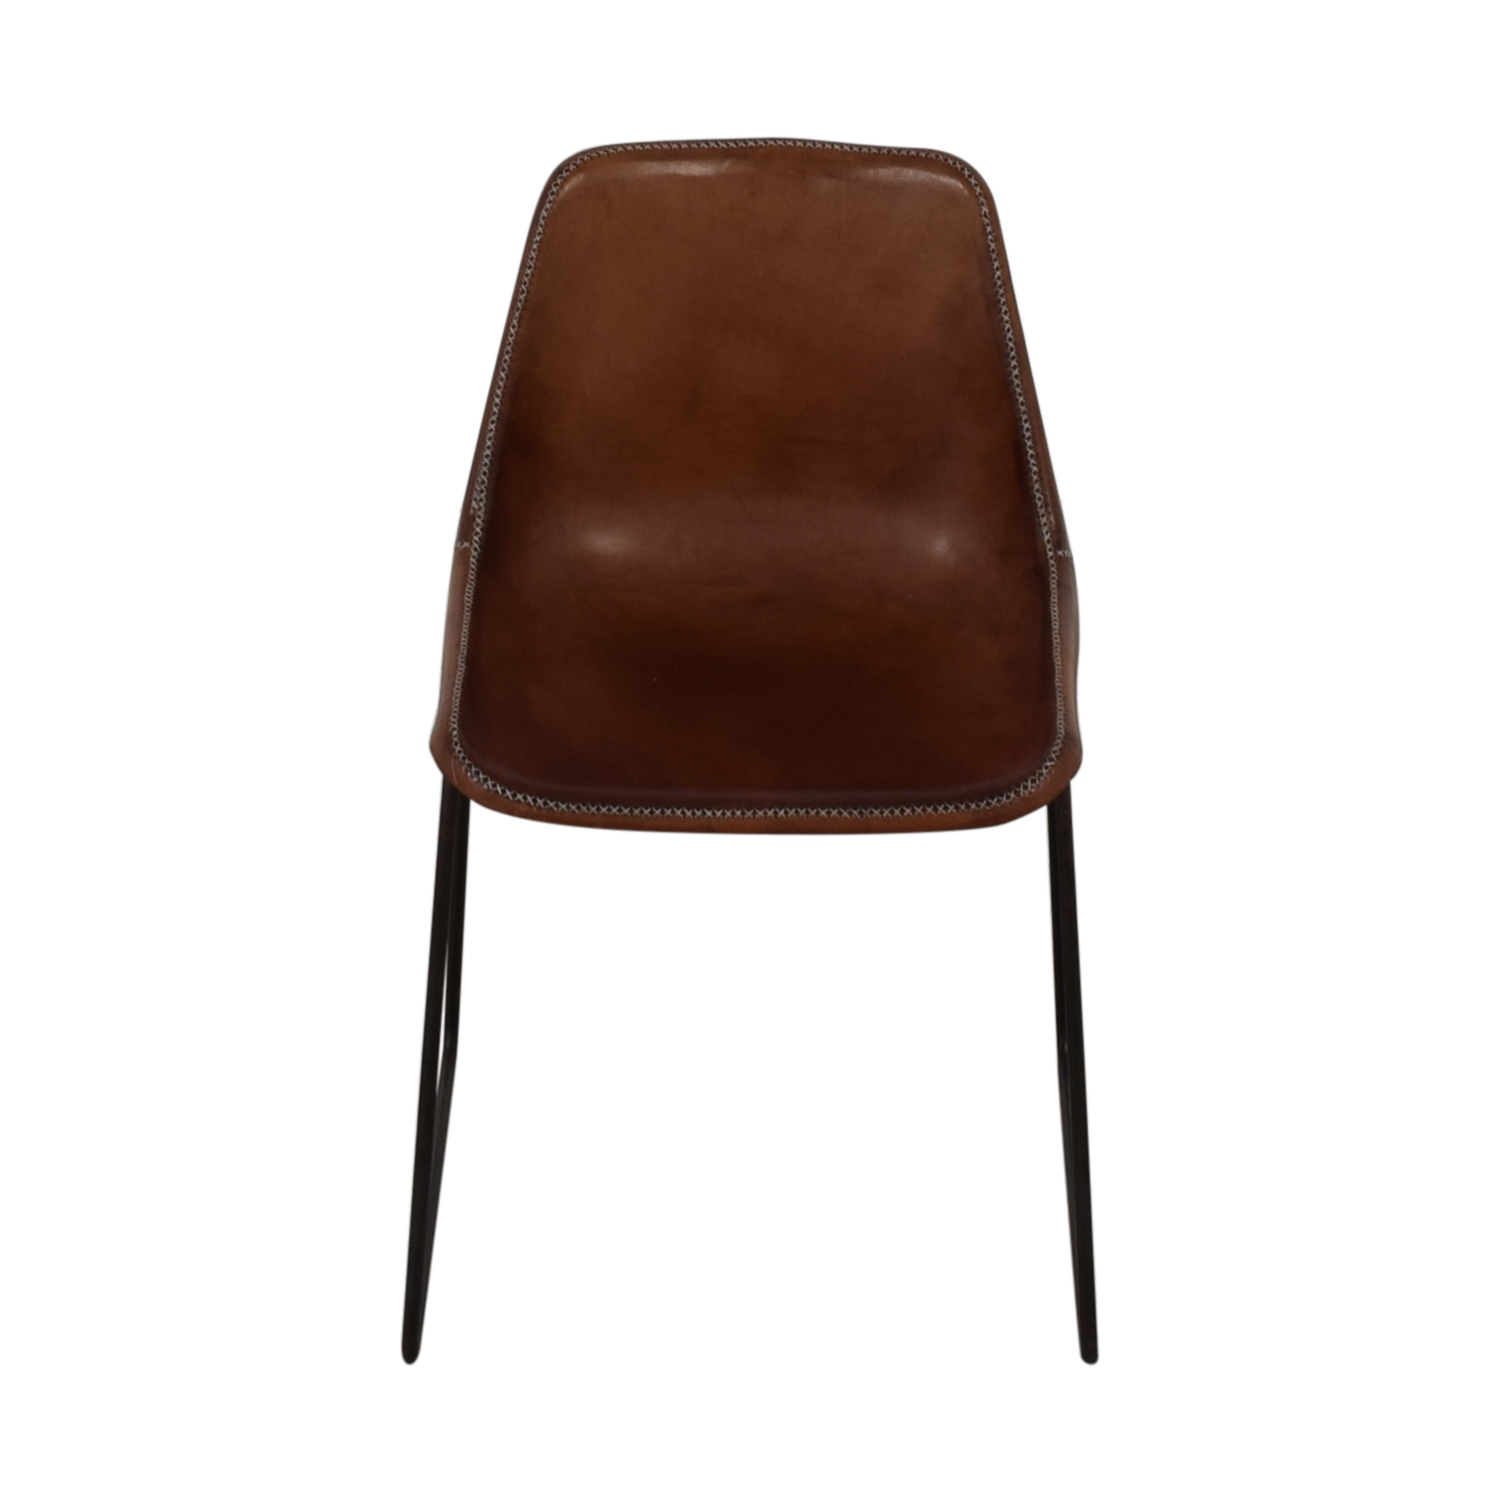 ABC Carpet & Home Giron Brown Leather Chair / Dining Chairs